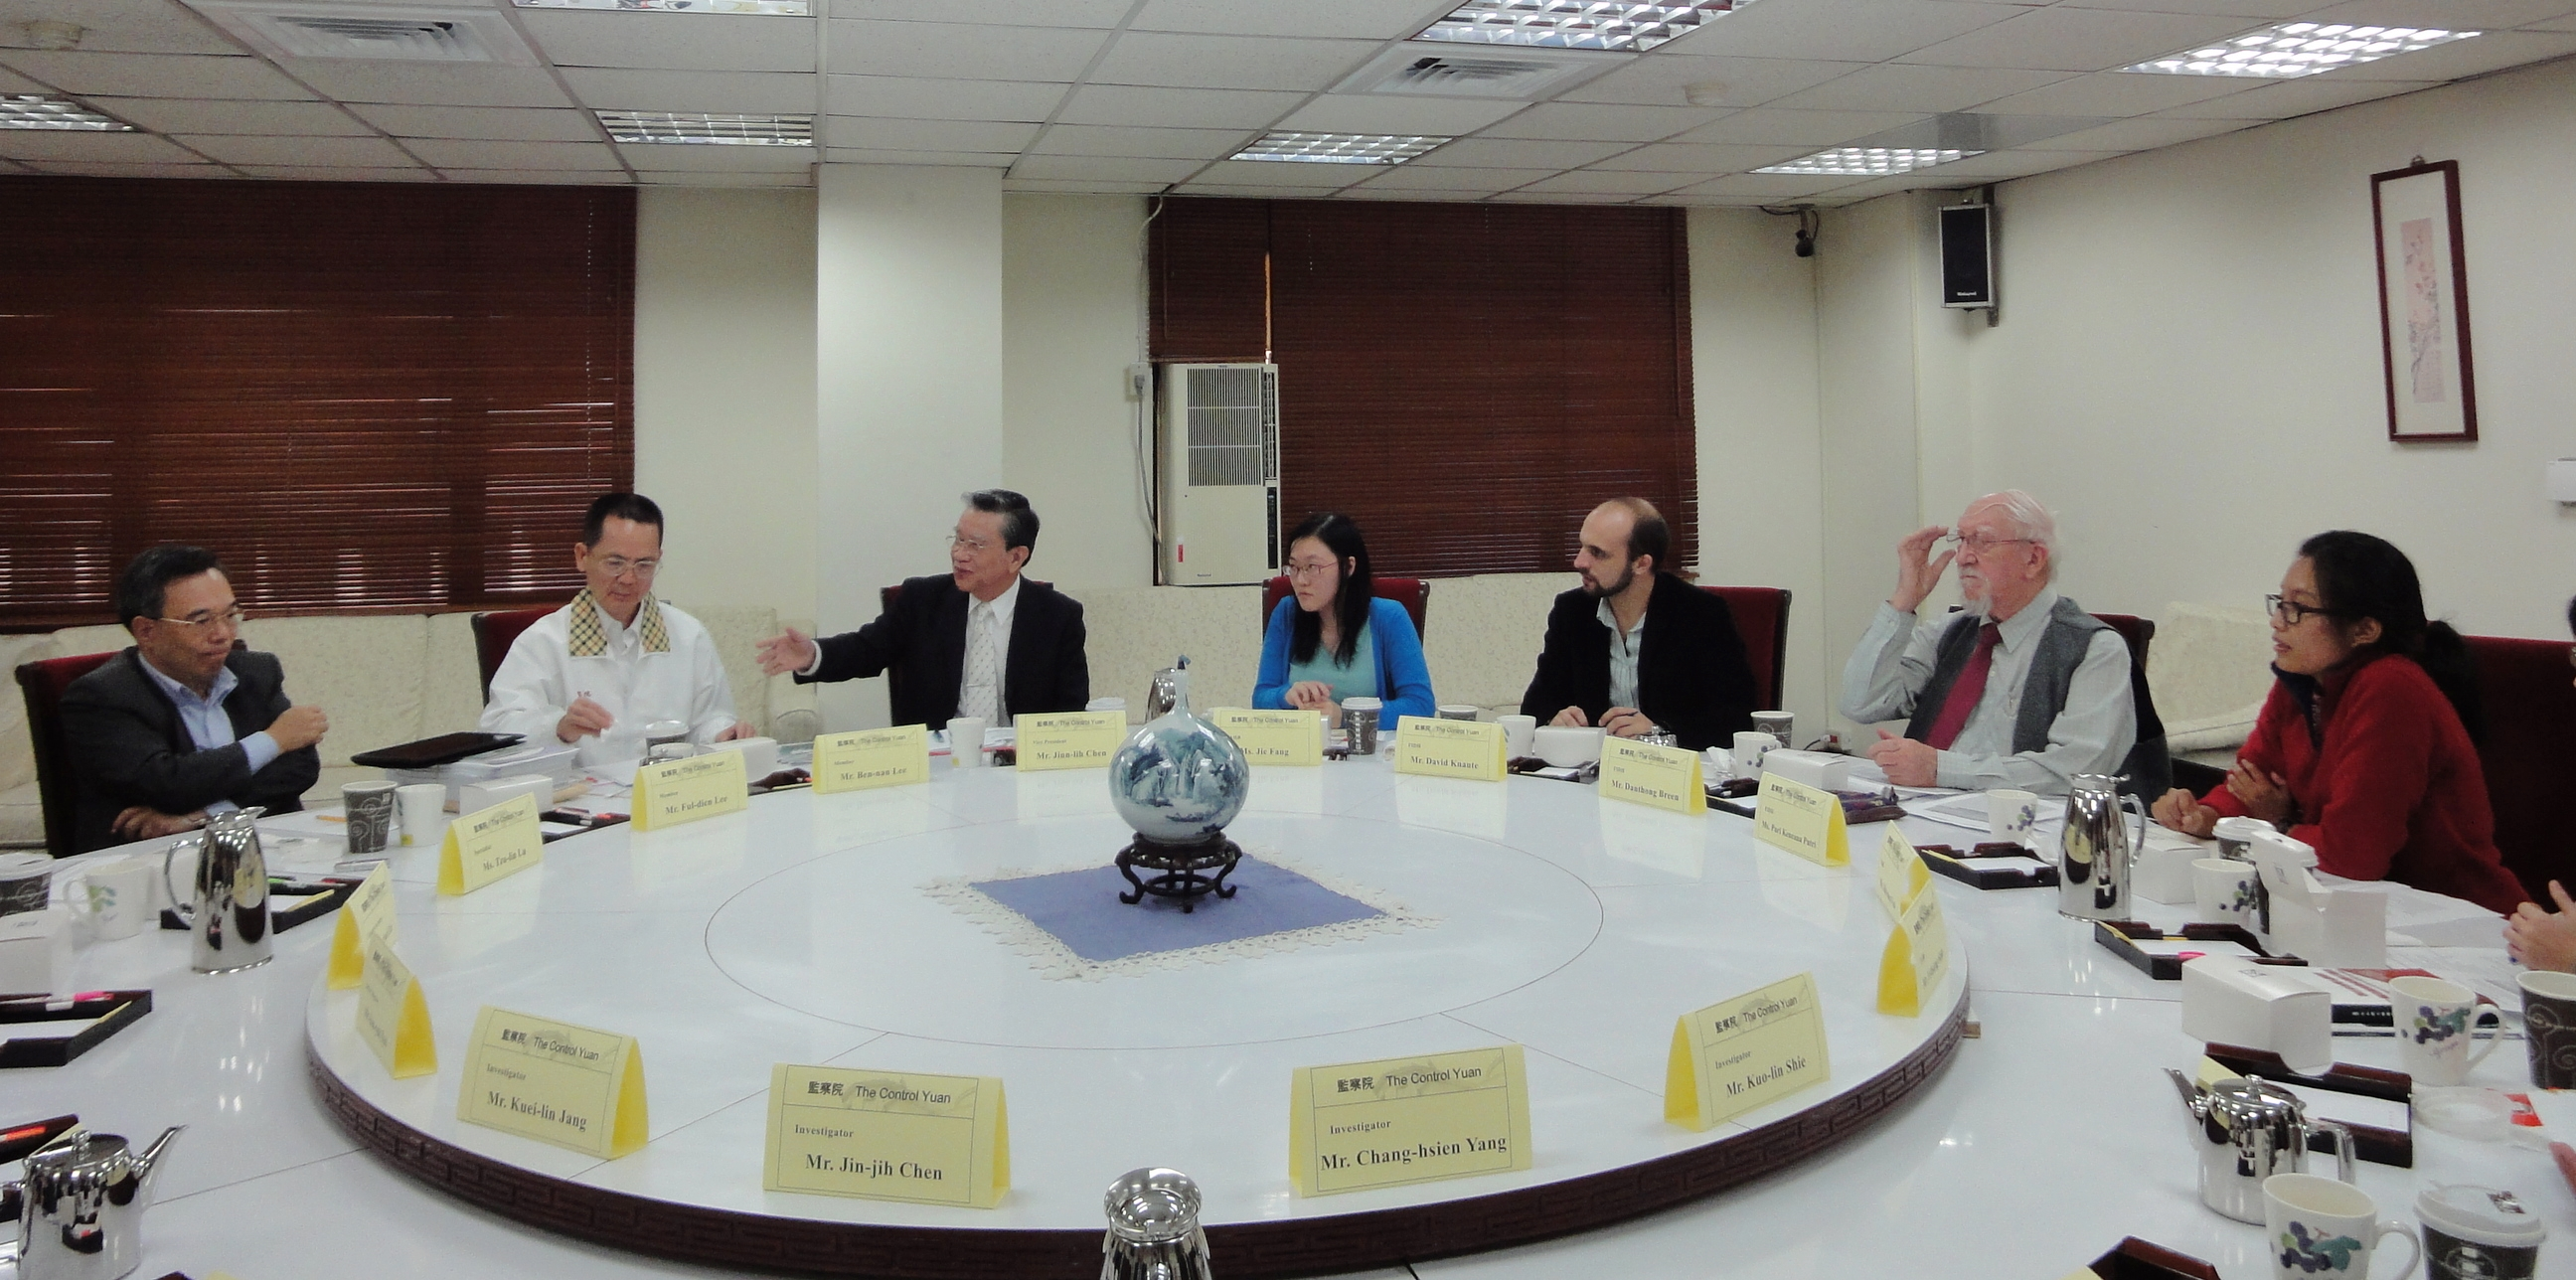 An open discussion with representatives from the International Federation for Human Rights (FIDH)